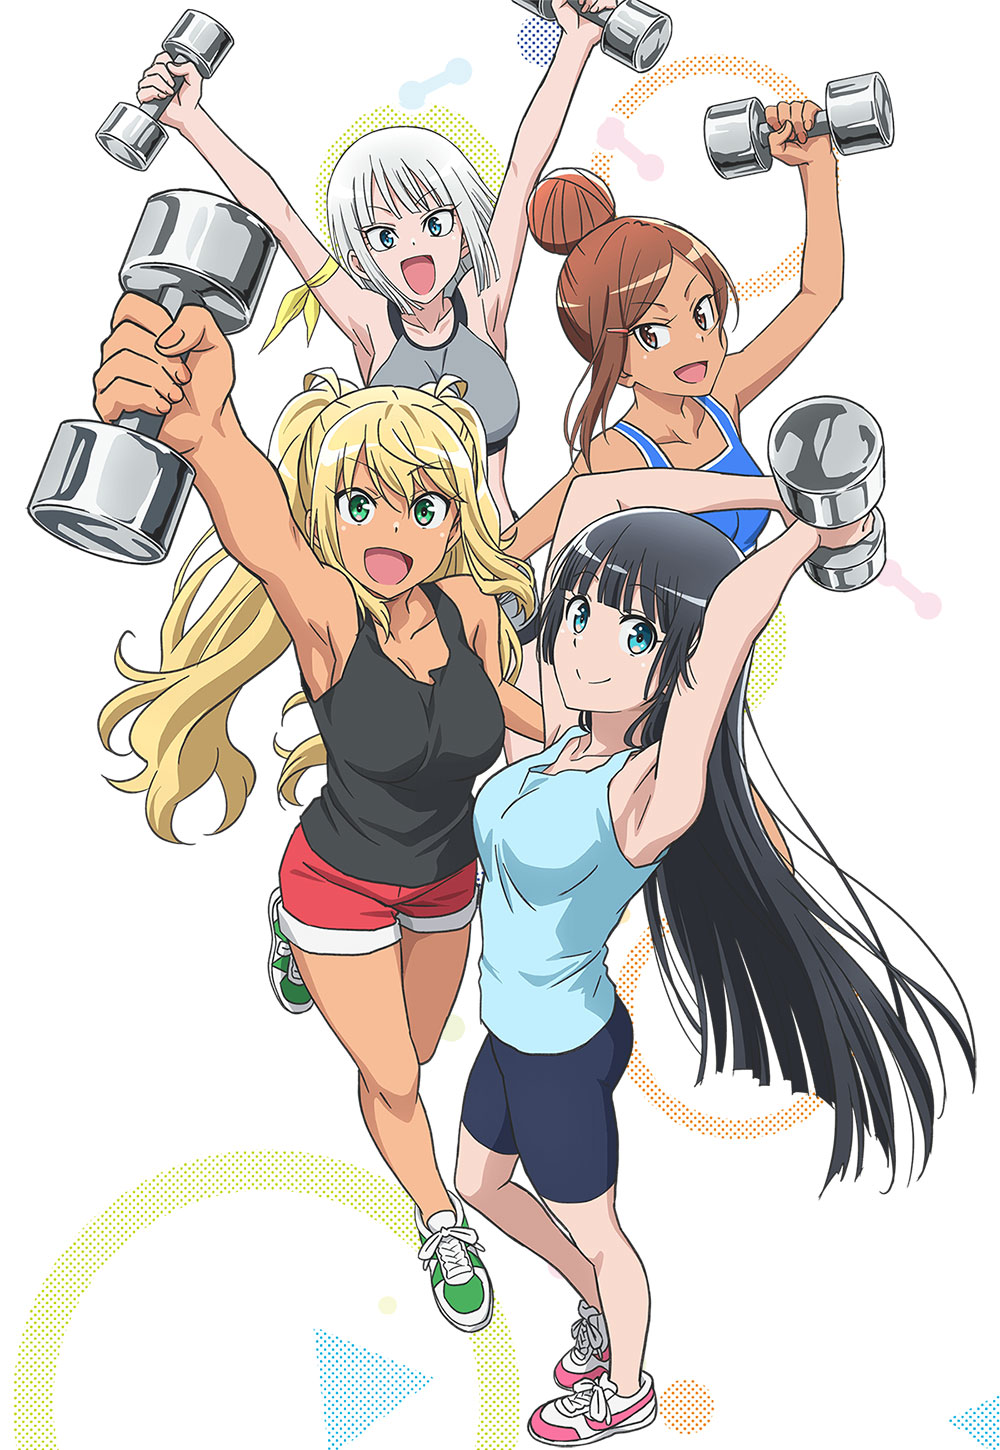 Dumbbell-Nan-Kilo-Moteru-Anime-Visual